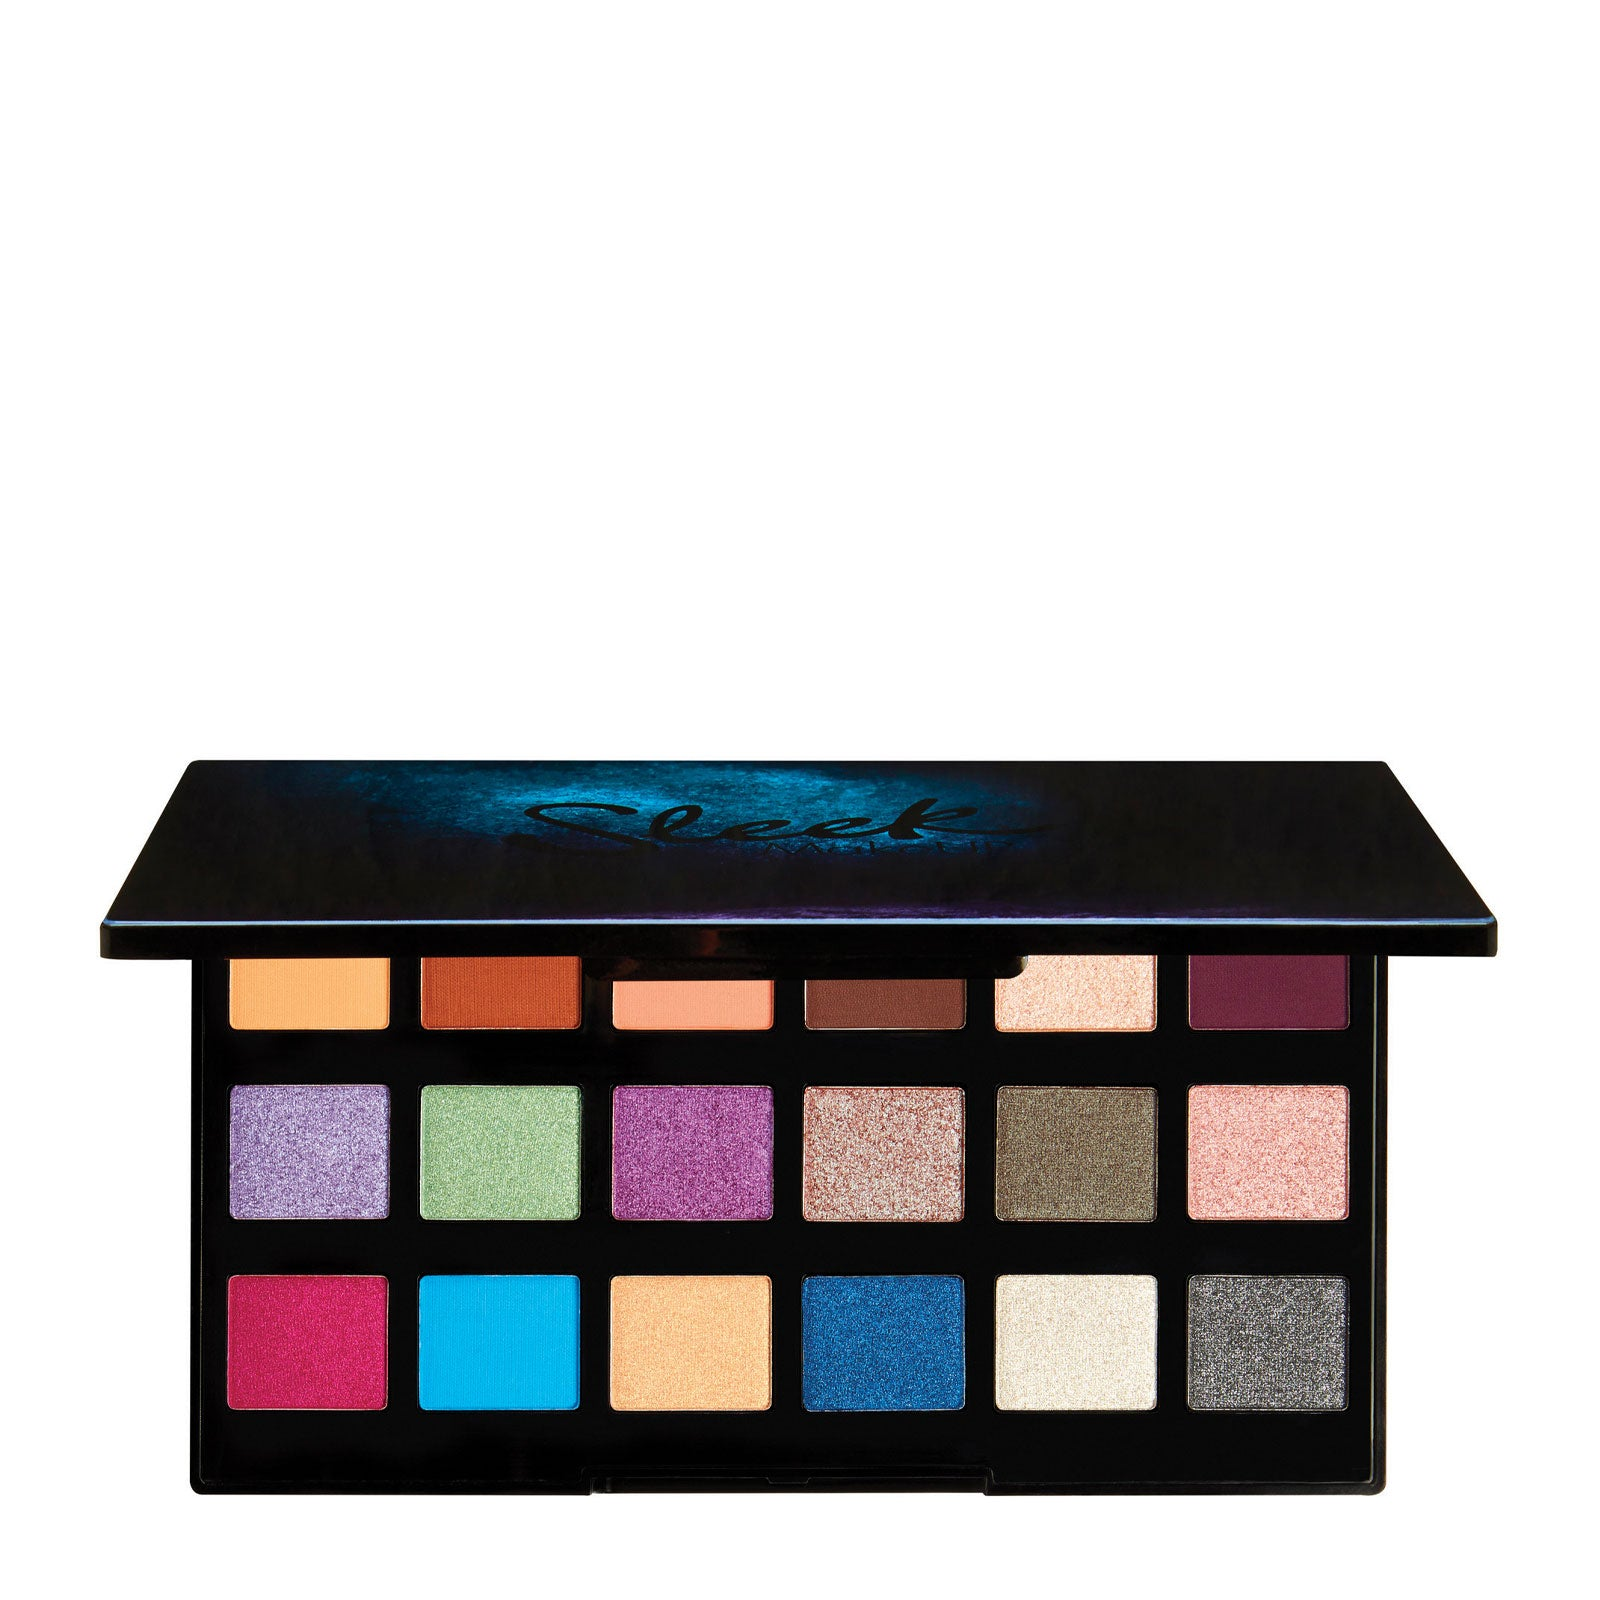 Sleek MakeUP Major Morphosis Eyeshadow Palette 16.5g